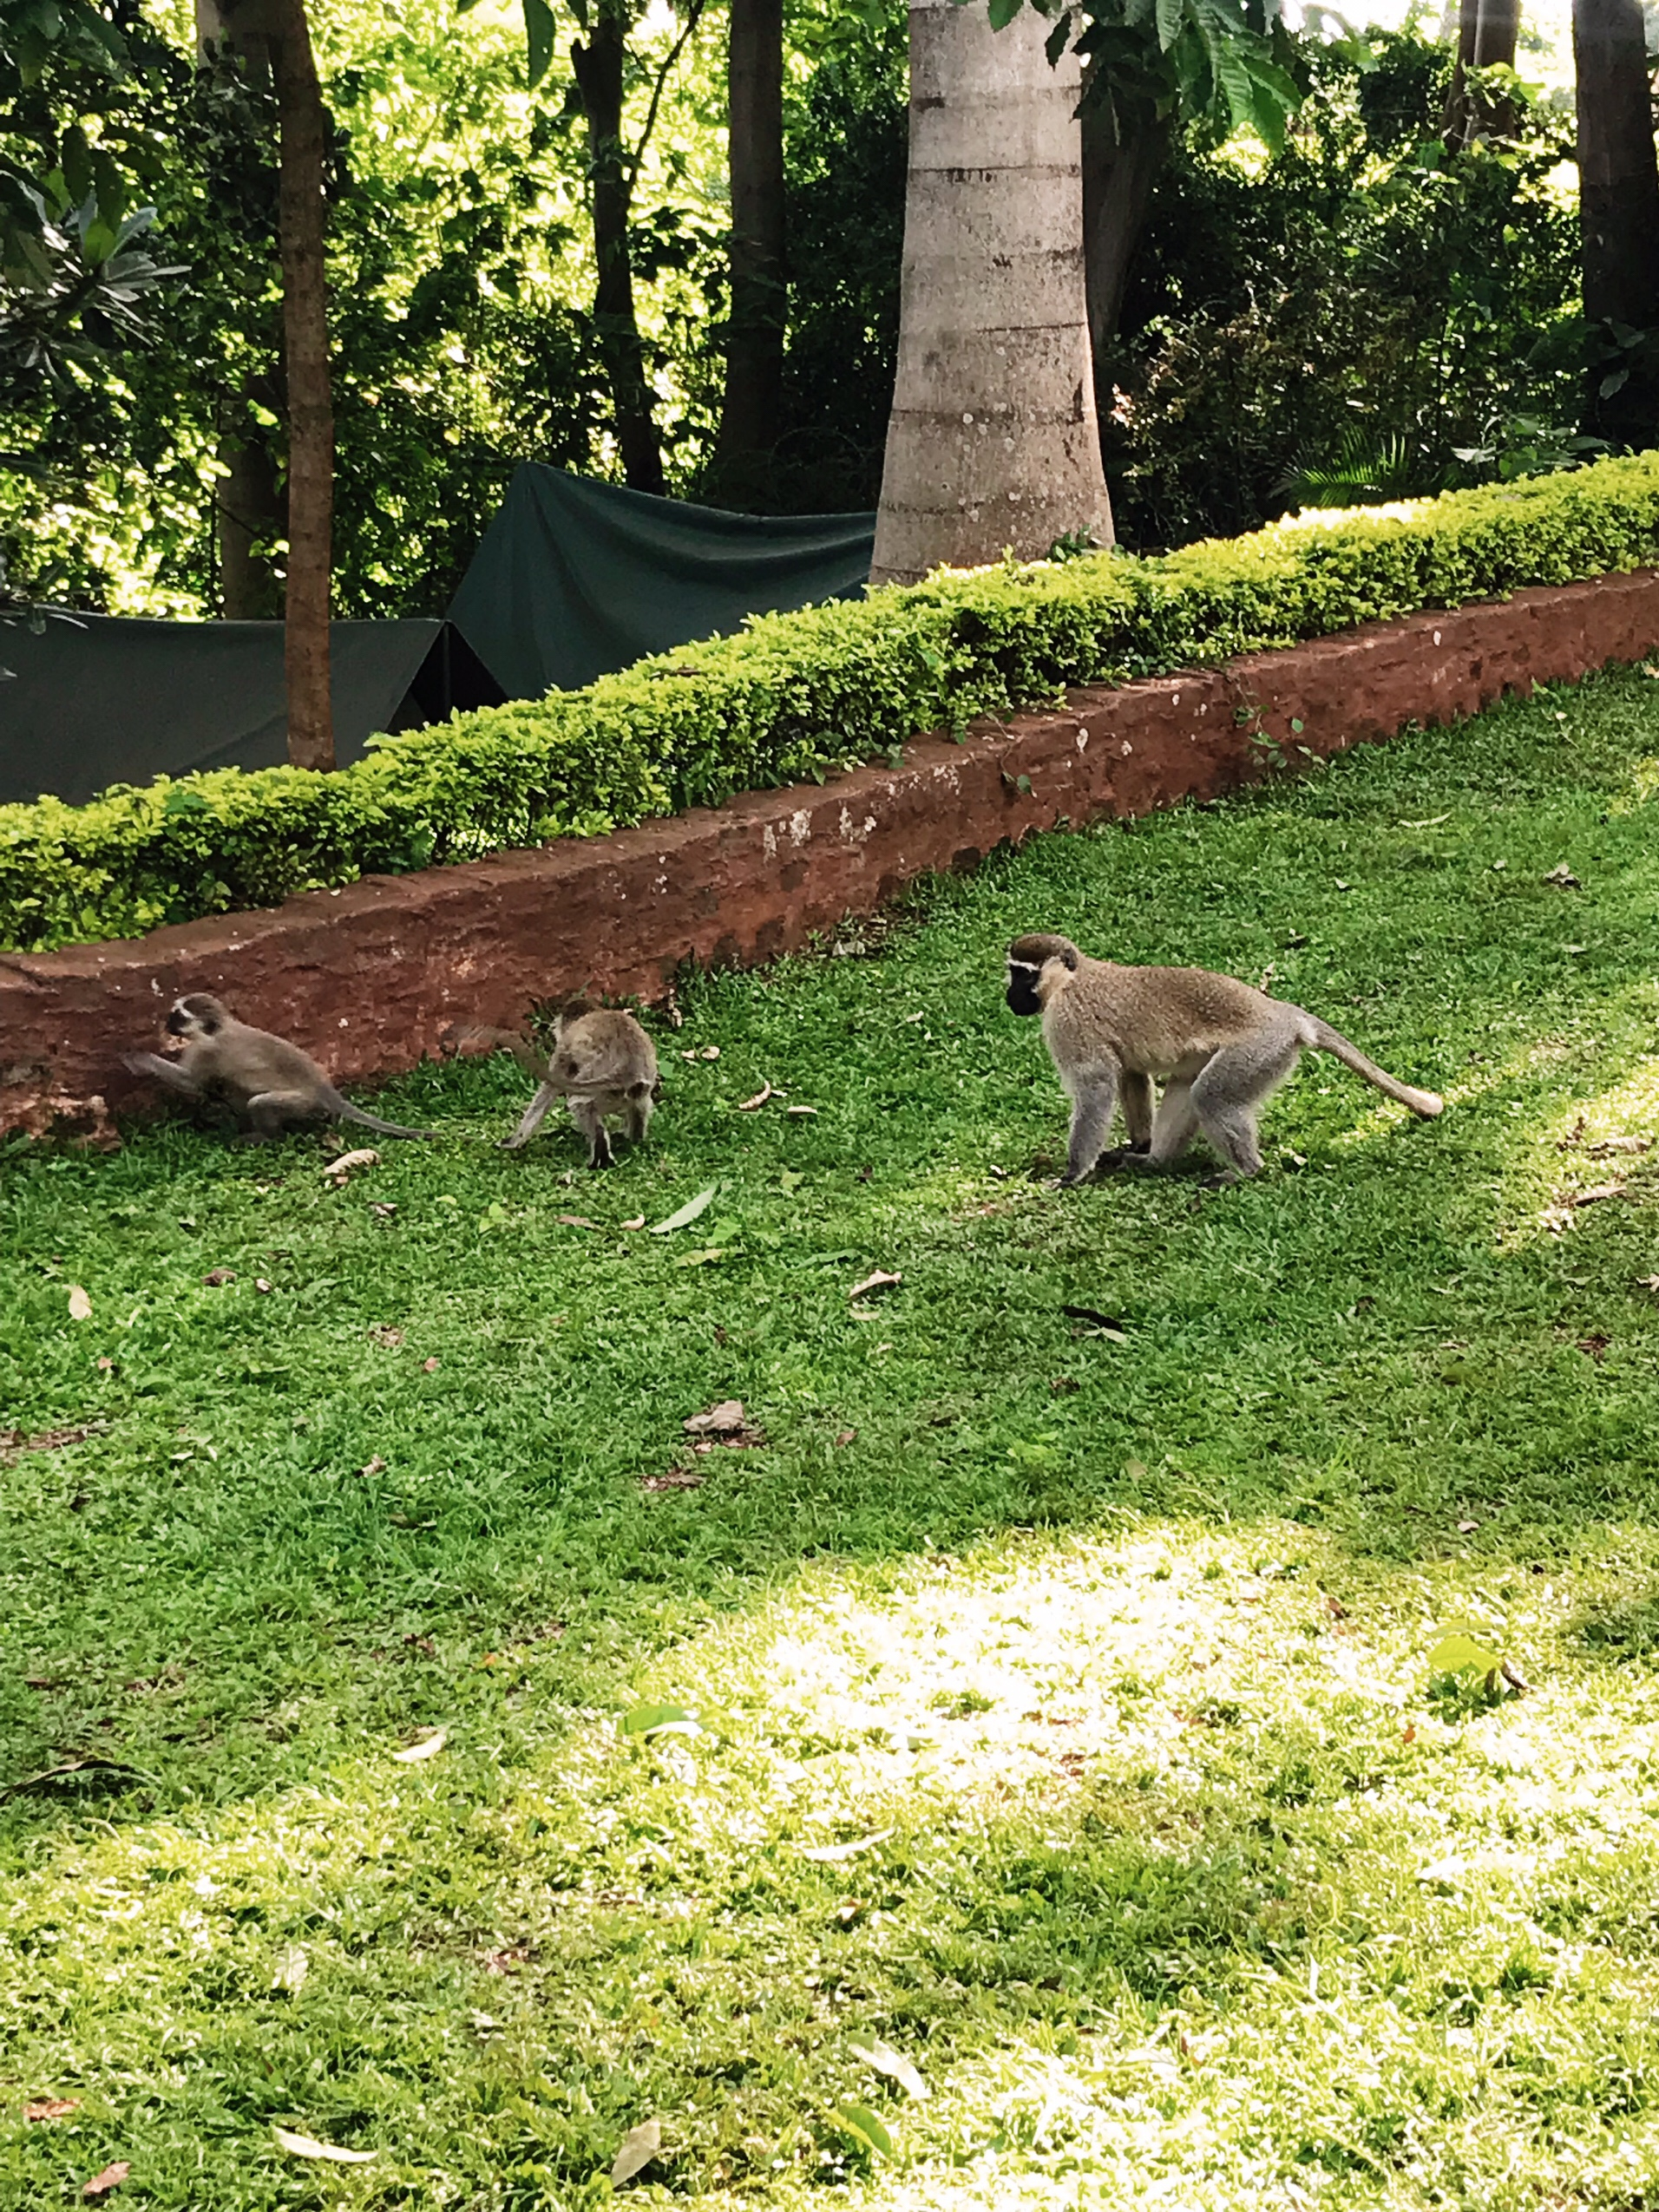 Image of monkeys in Nile River Explorers Camp in Jinja